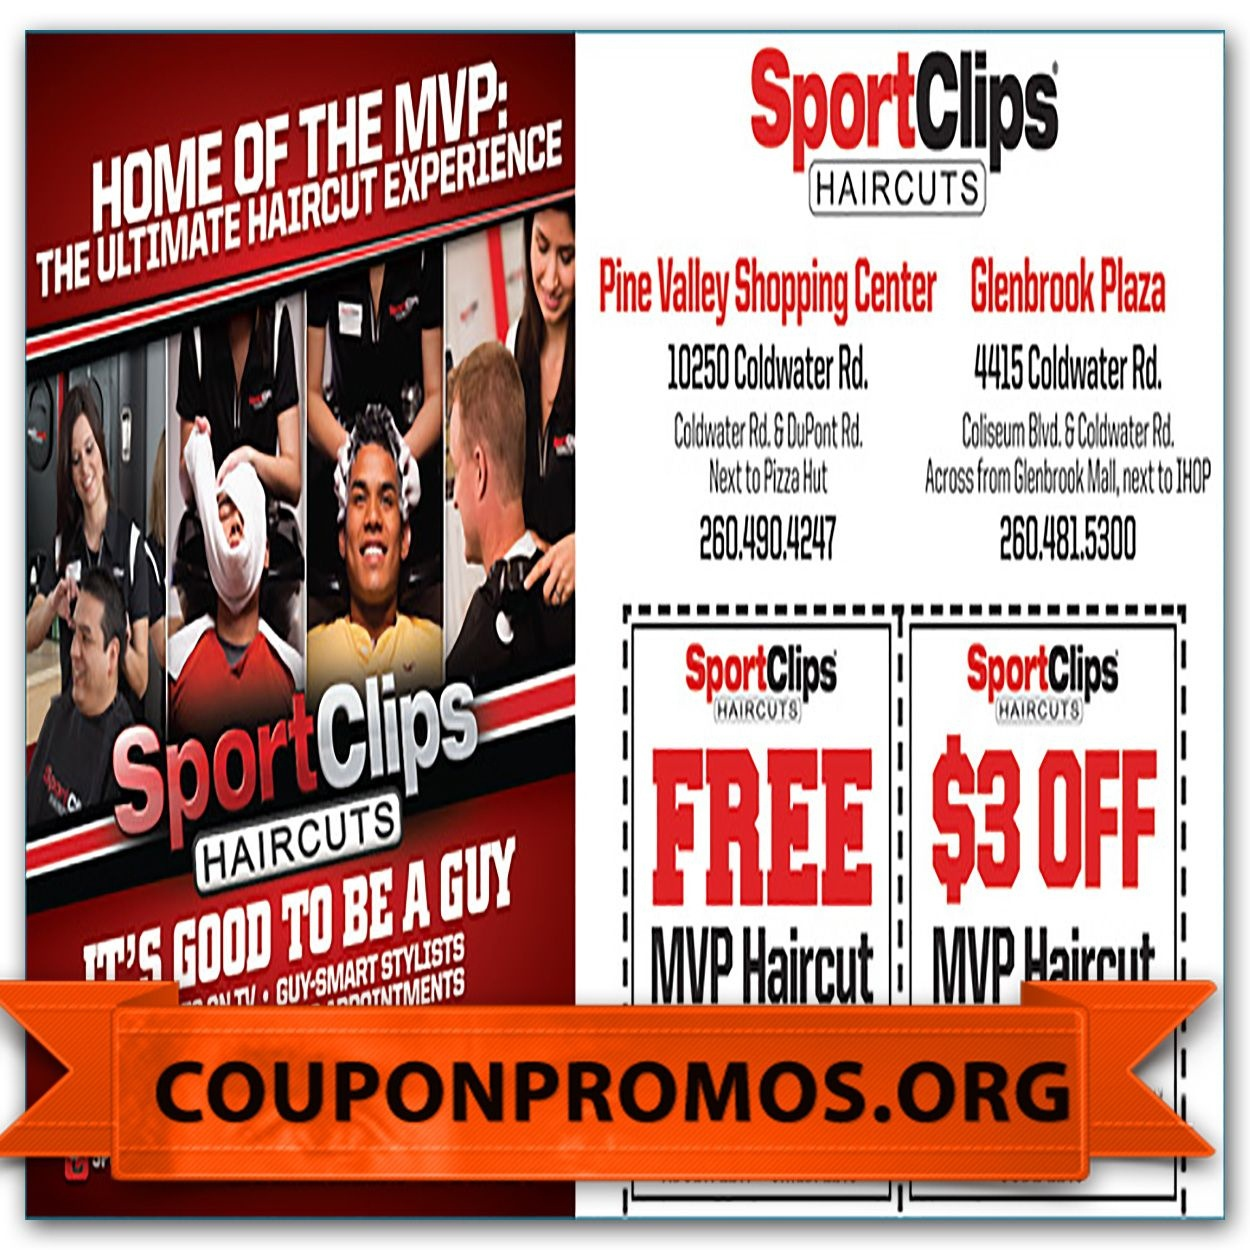 Sports Clips Coupon Printable For December | Sample Coupons For - Sports Clips Free Haircut Printable Coupon